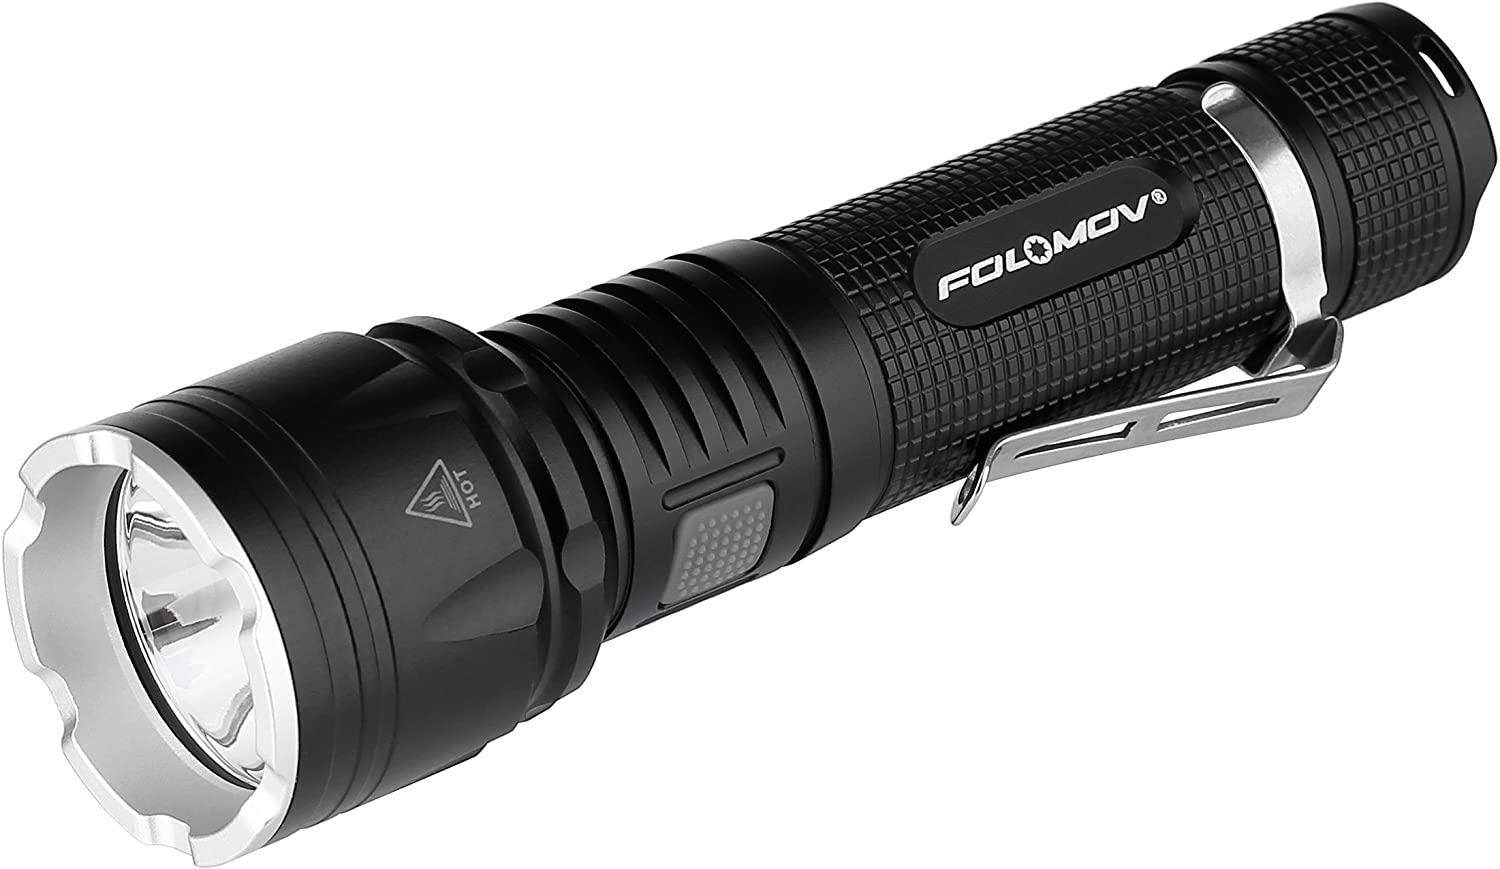 1200 Lumens 18650 Charge-discharge Focus Led Flashlight, XP-L V6 Led, 385 Yard Beam Distance, Power bank and Switch-lock Guard Function, 2600Mah Protected Battery and Holster Included,FOLOMOV TOUR B4M